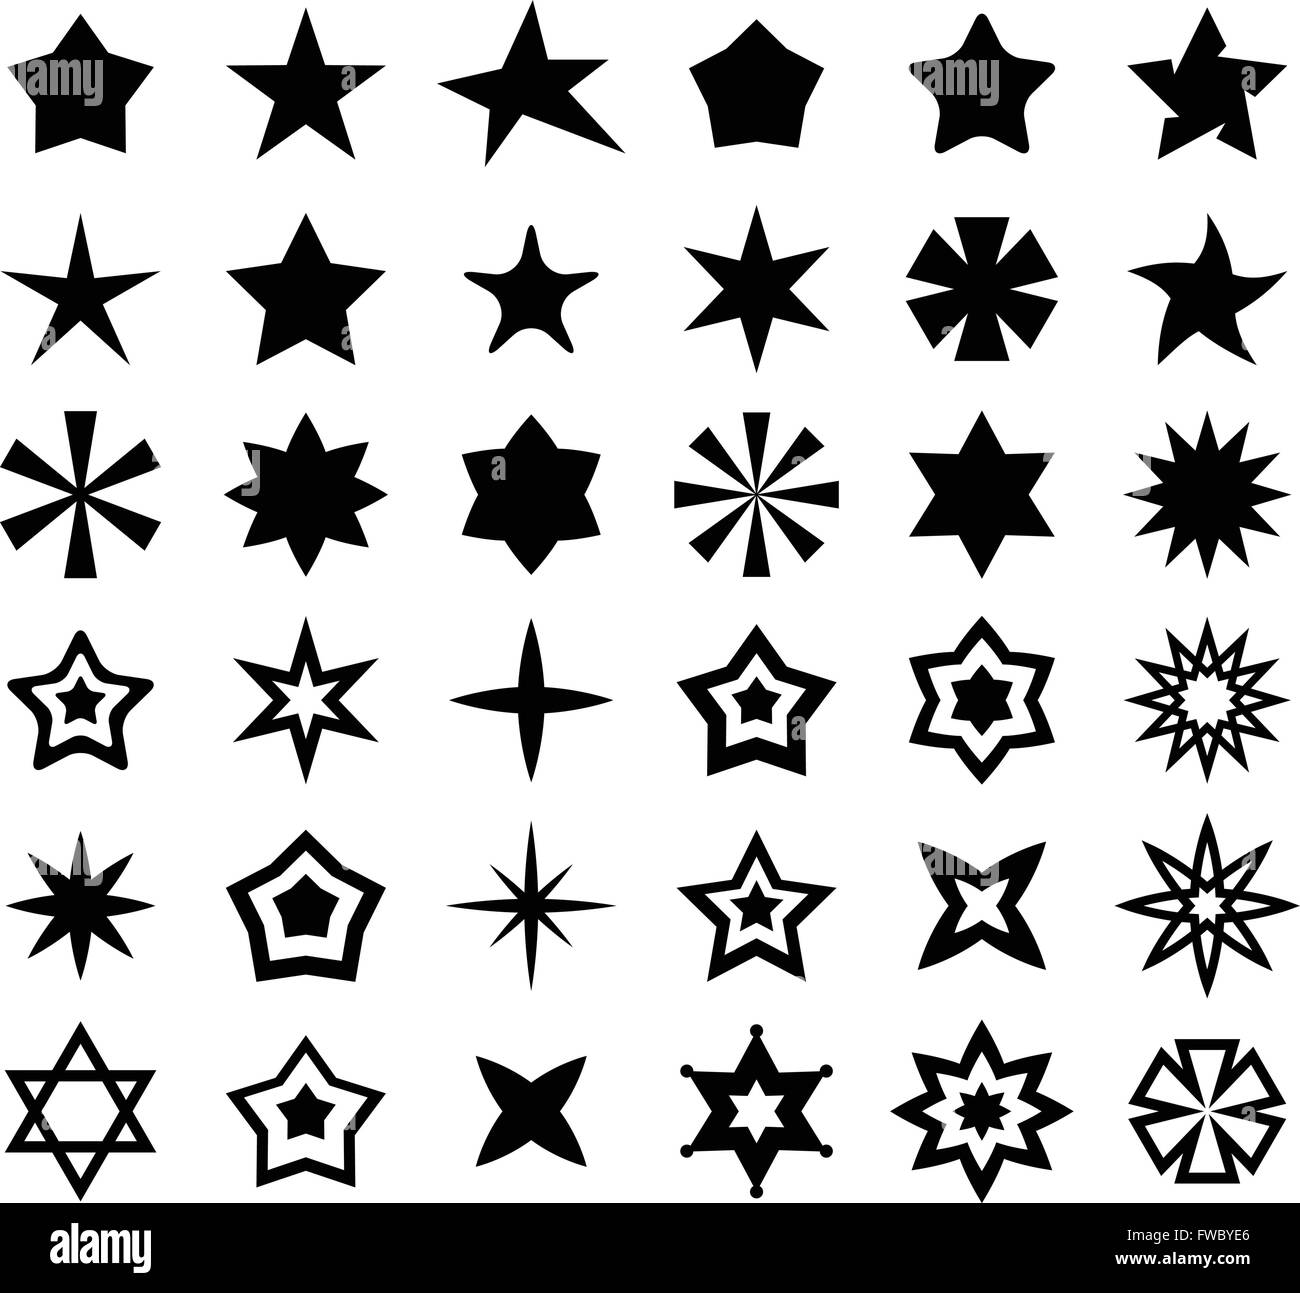 Star sign - Stock Image